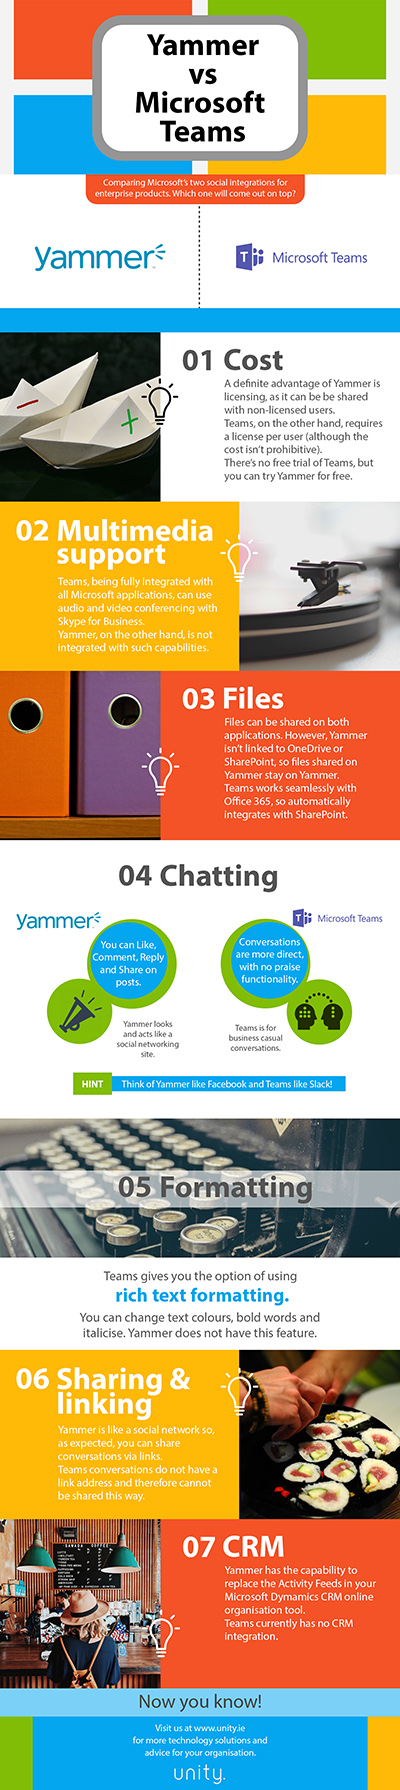 Yammer v Microsoft Teams infographic Unity Technology Solutions small